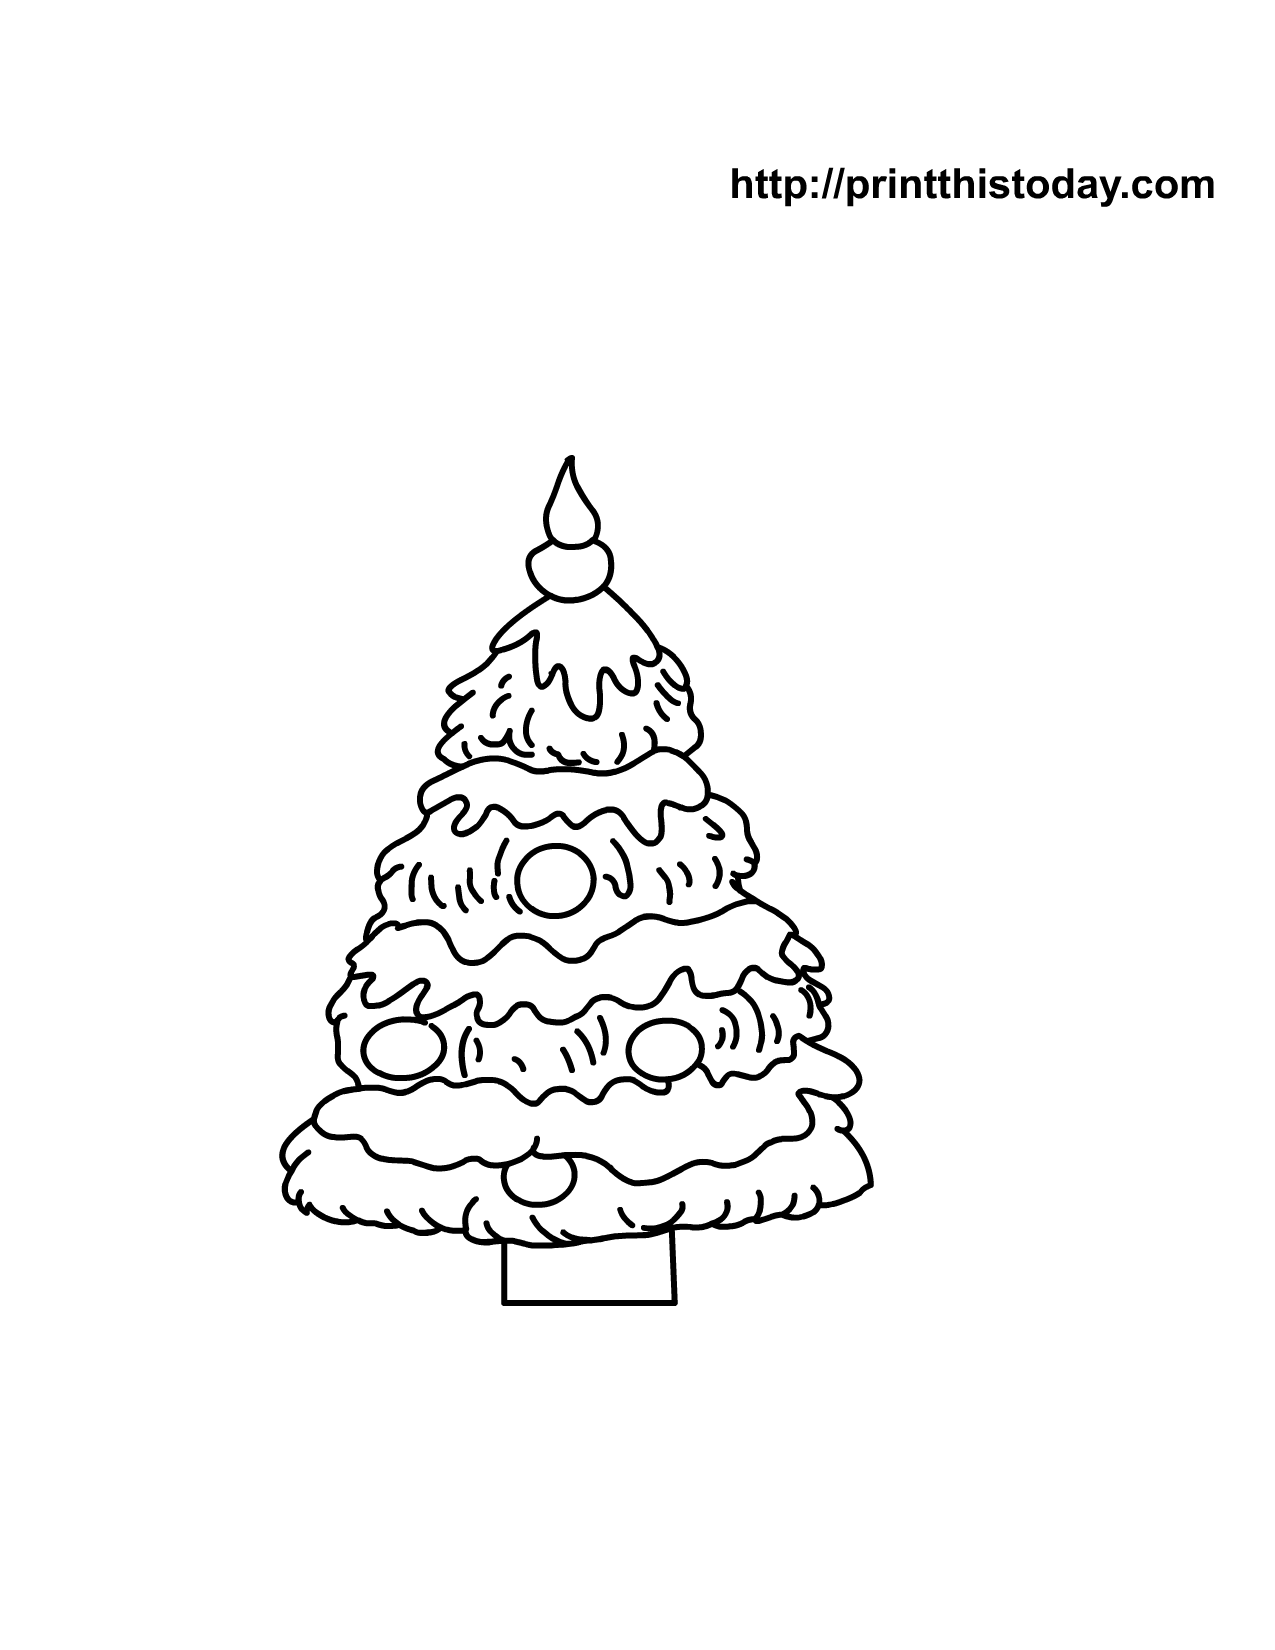 christmas tree printable coloring pages - free printable christmas tree coloring pages